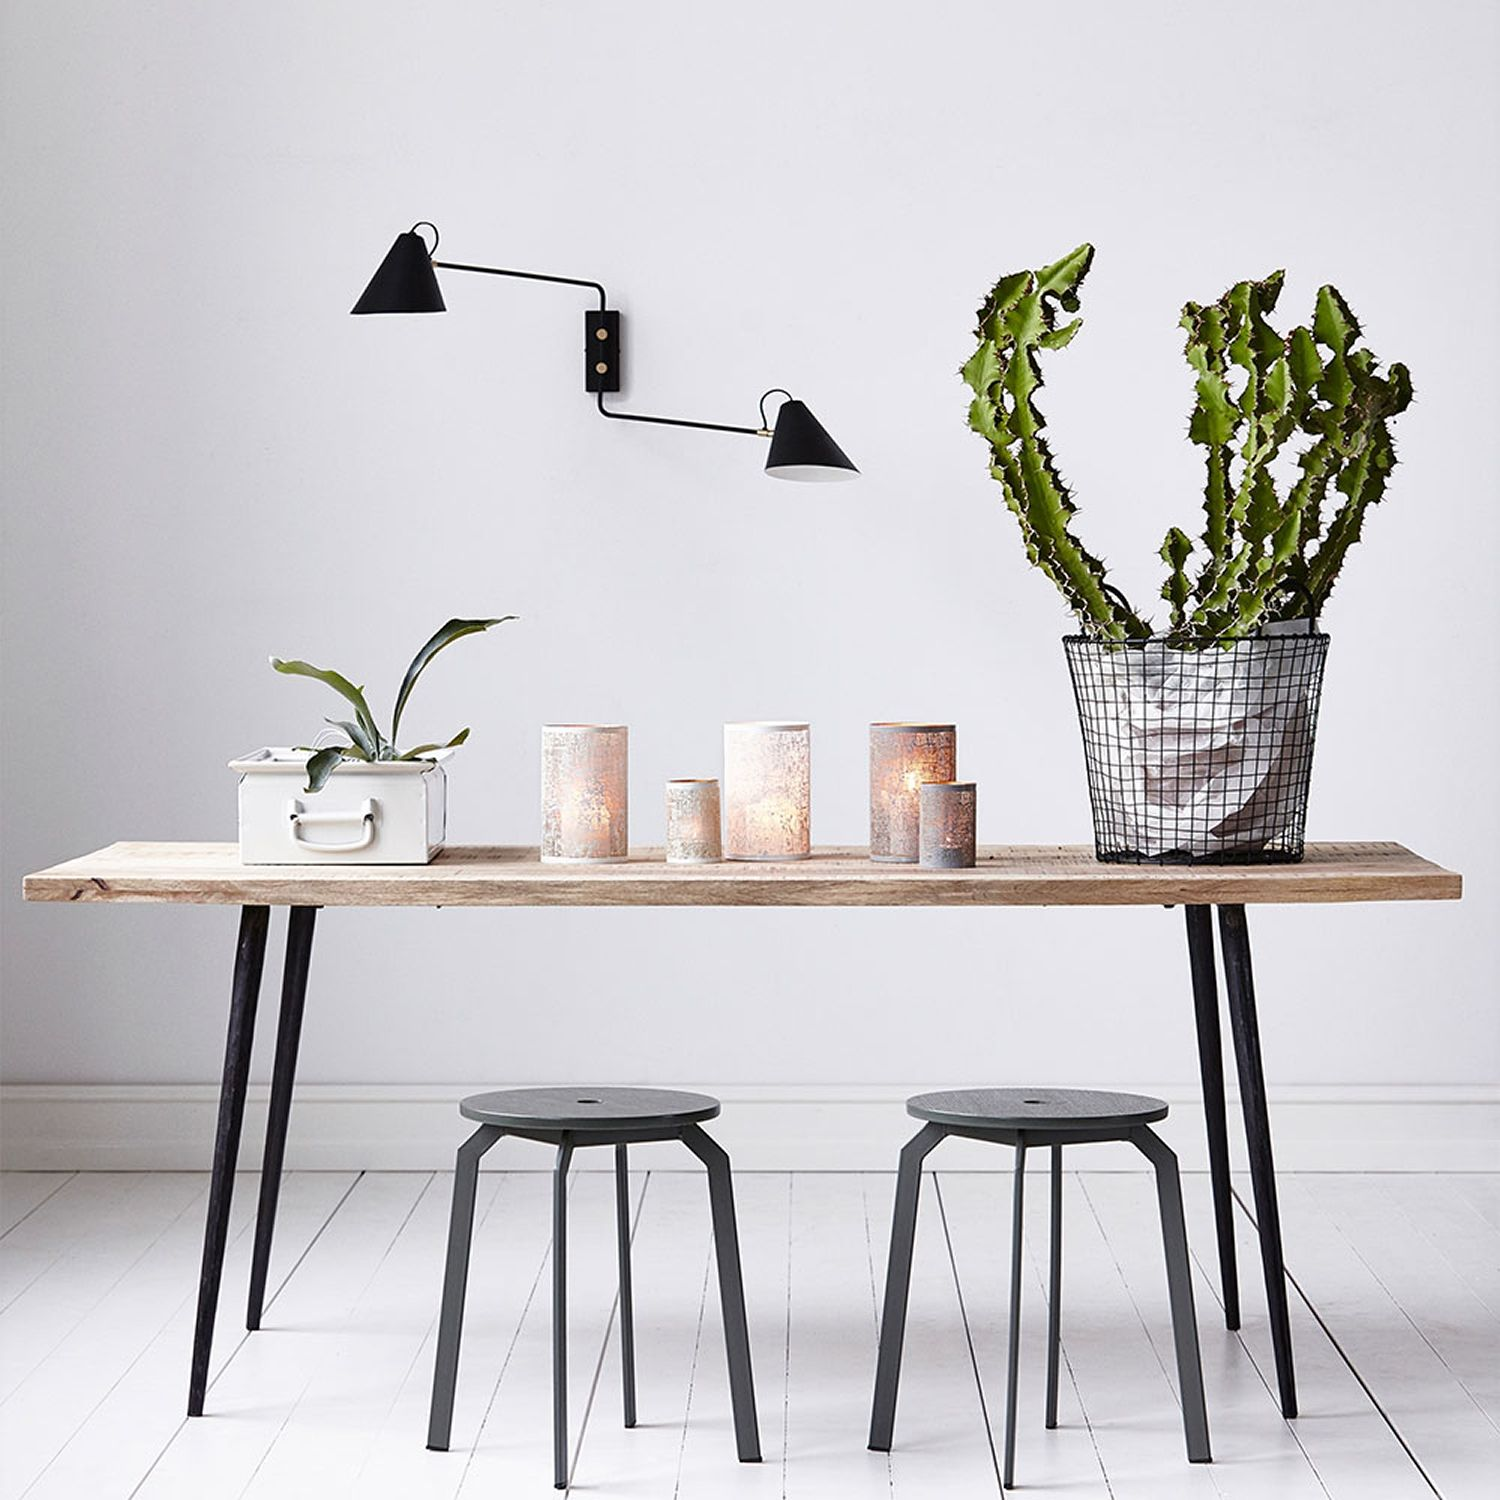 15 Zoom on ultra design stools for the kitchen